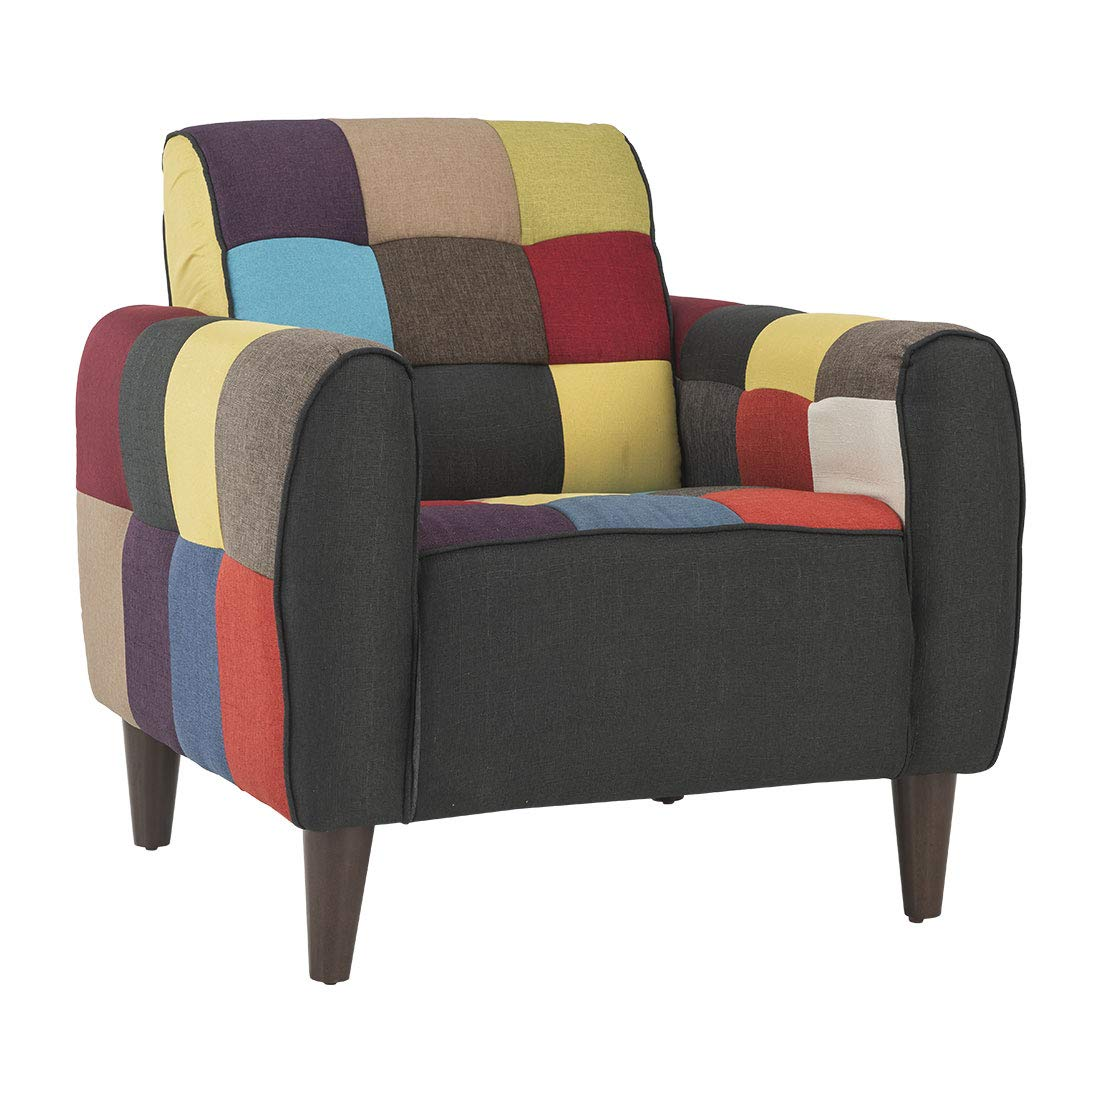 Whias single seater sofa